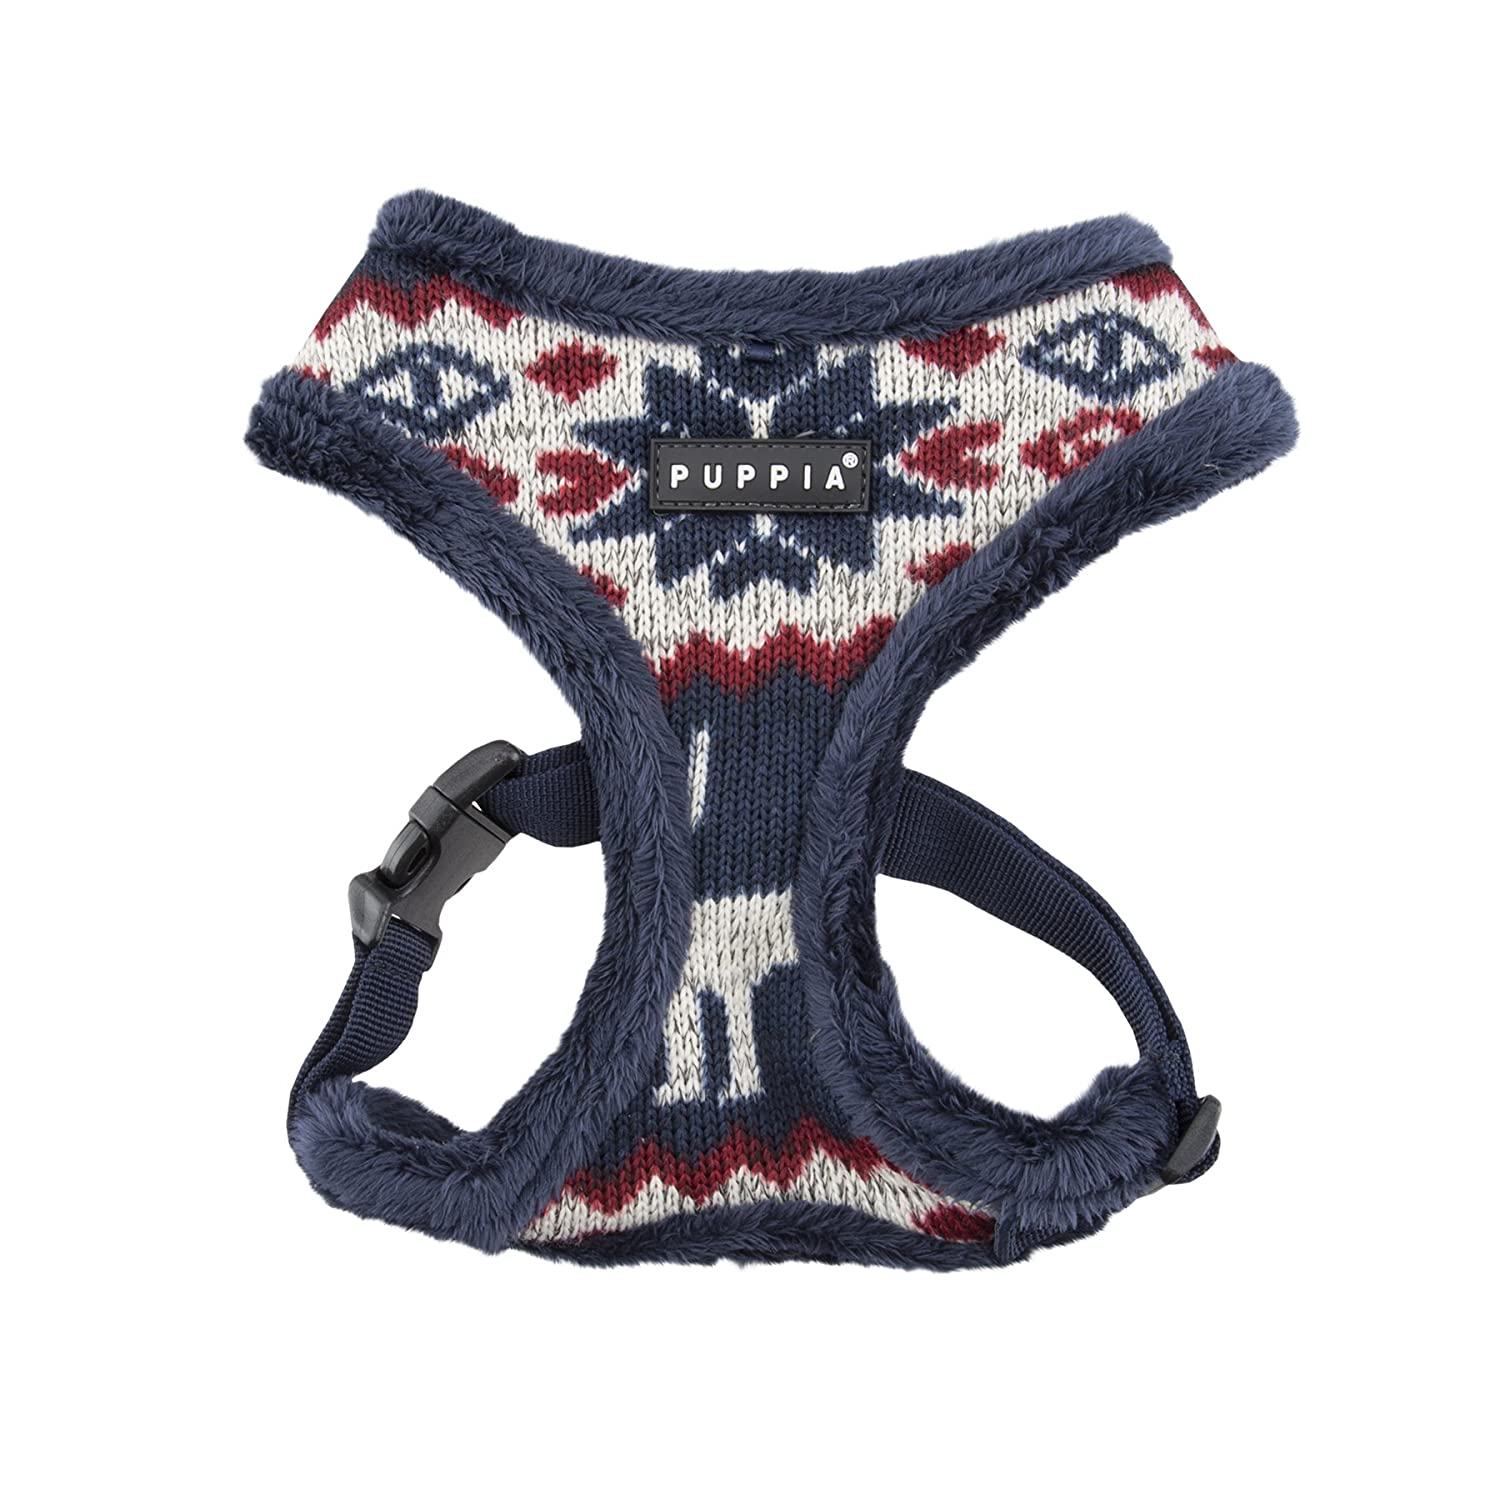 Piccola Cupido Harness -A per Animali, Marina, Piccolo